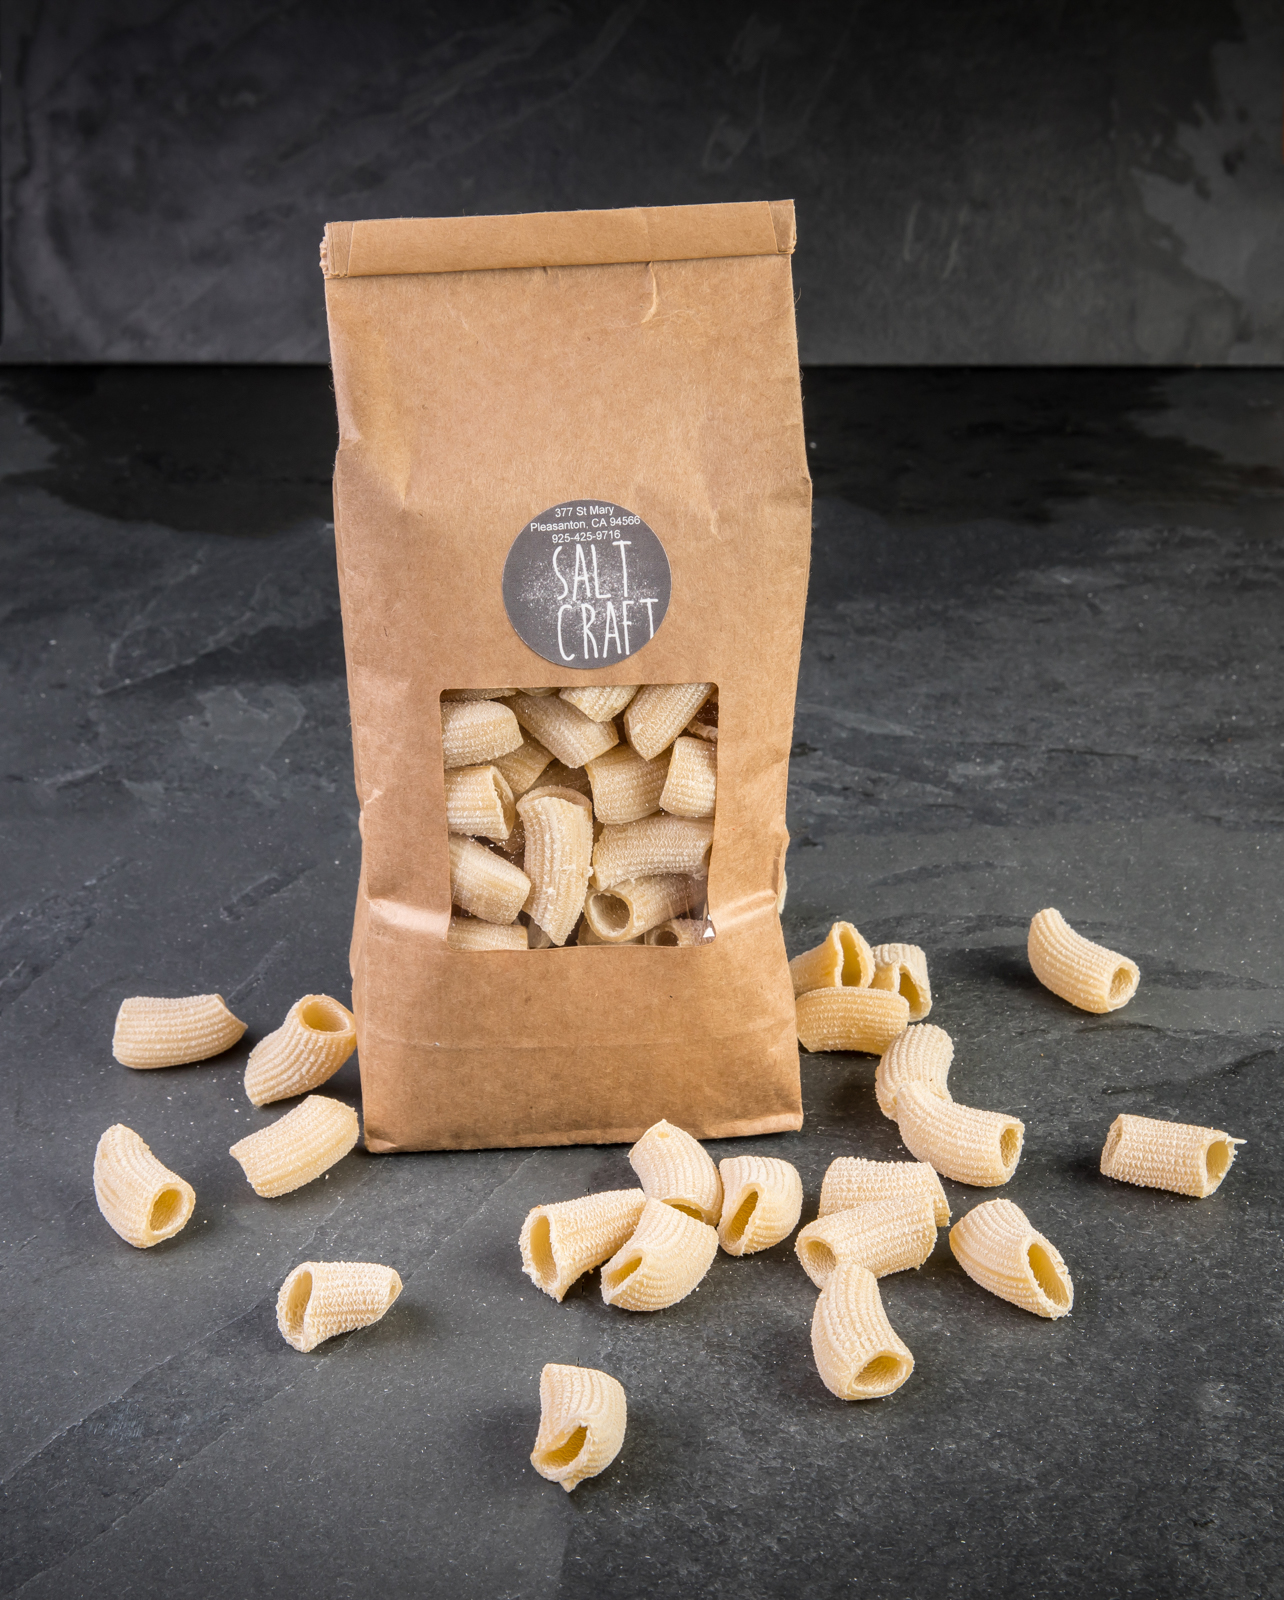 salt craft rigatoni